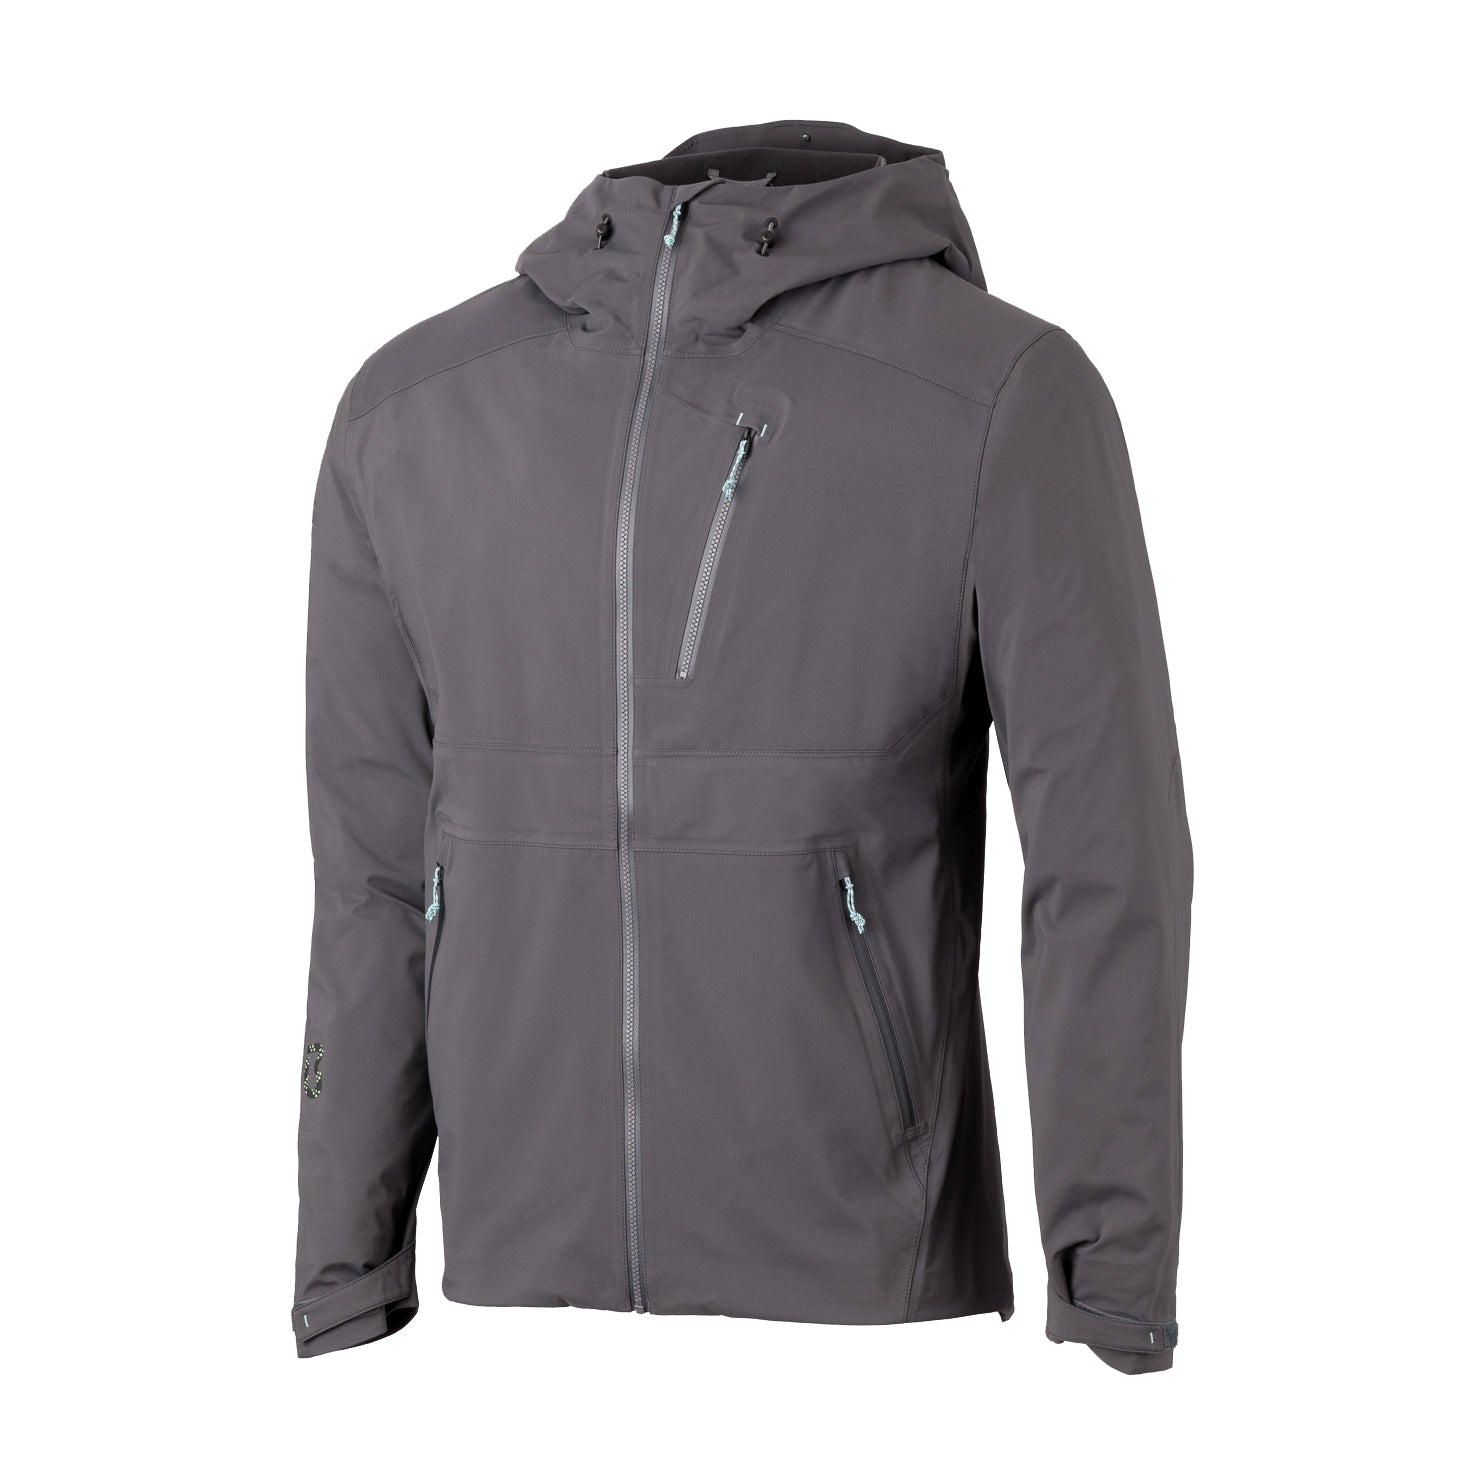 Men's NeoShell Nuker Jacket